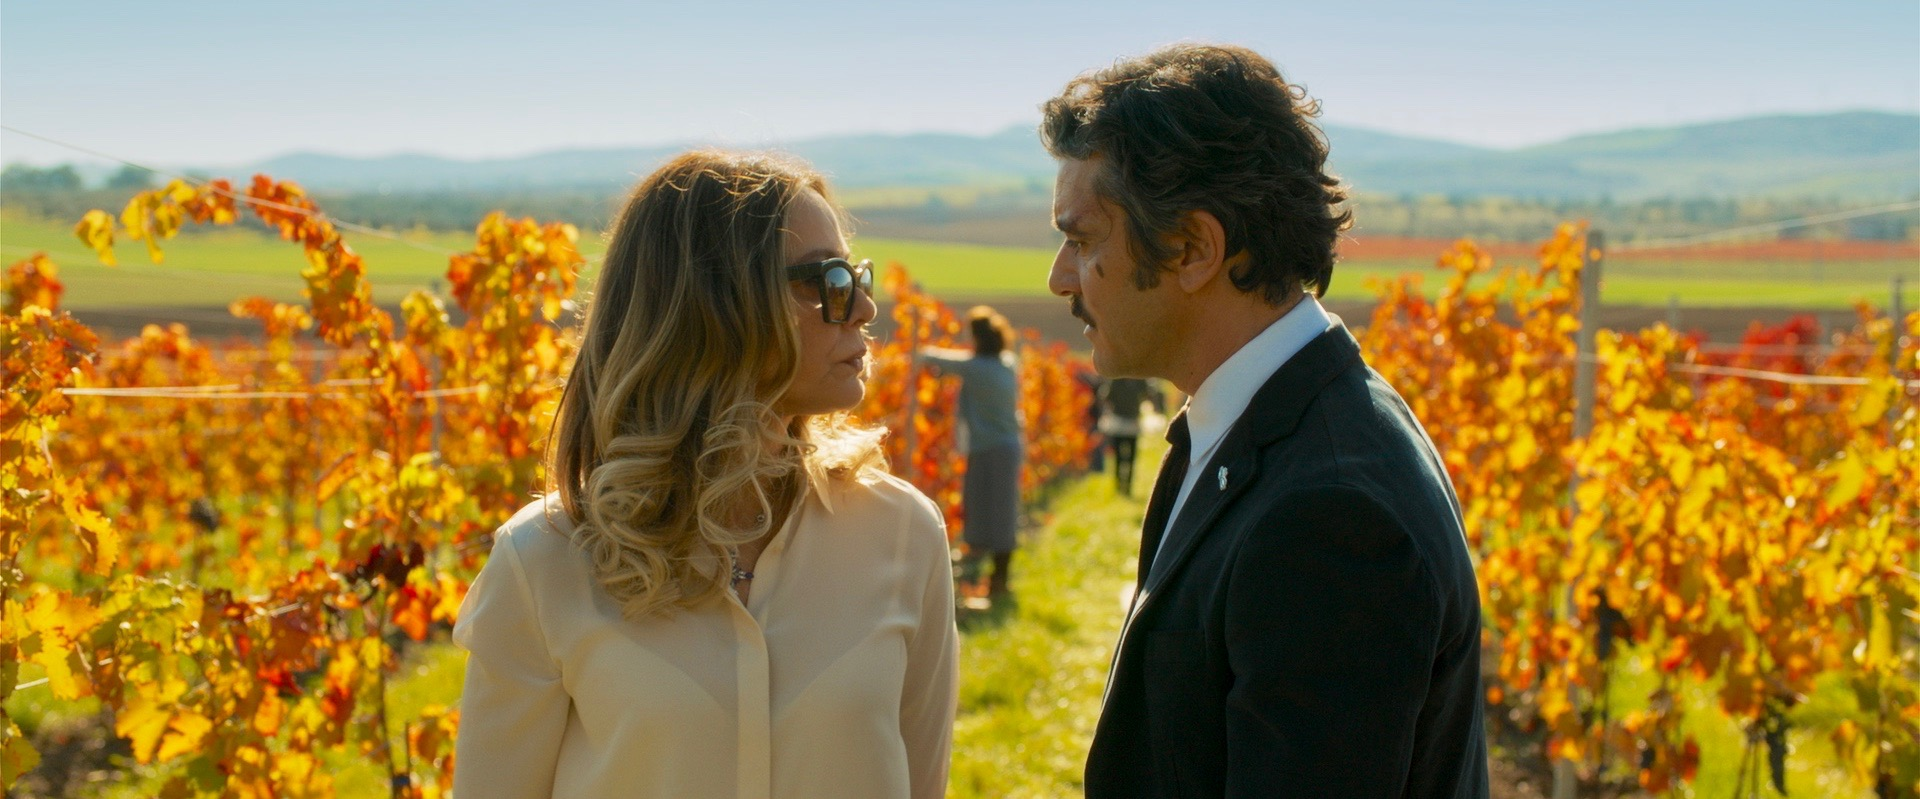 Wine to Love: Michele Venitucci e Ornella Muti in una scena